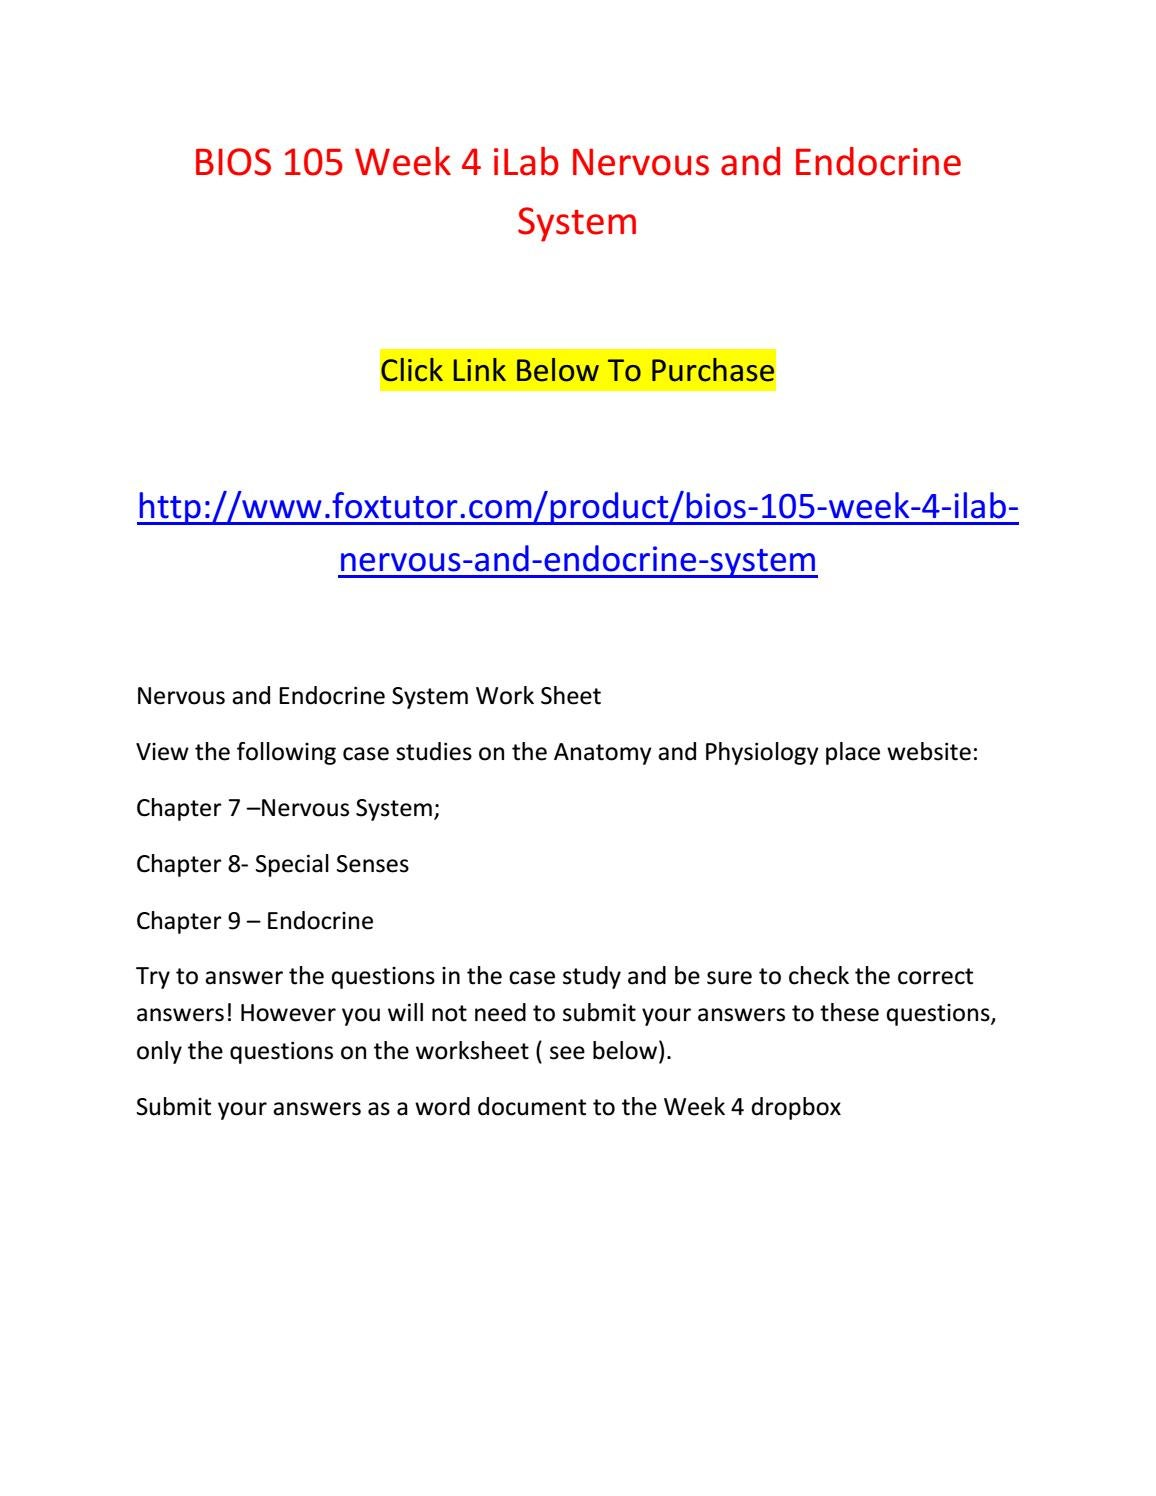 Bios 105 week 4 ilab nervous and endocrine system by bios105ft - issuu